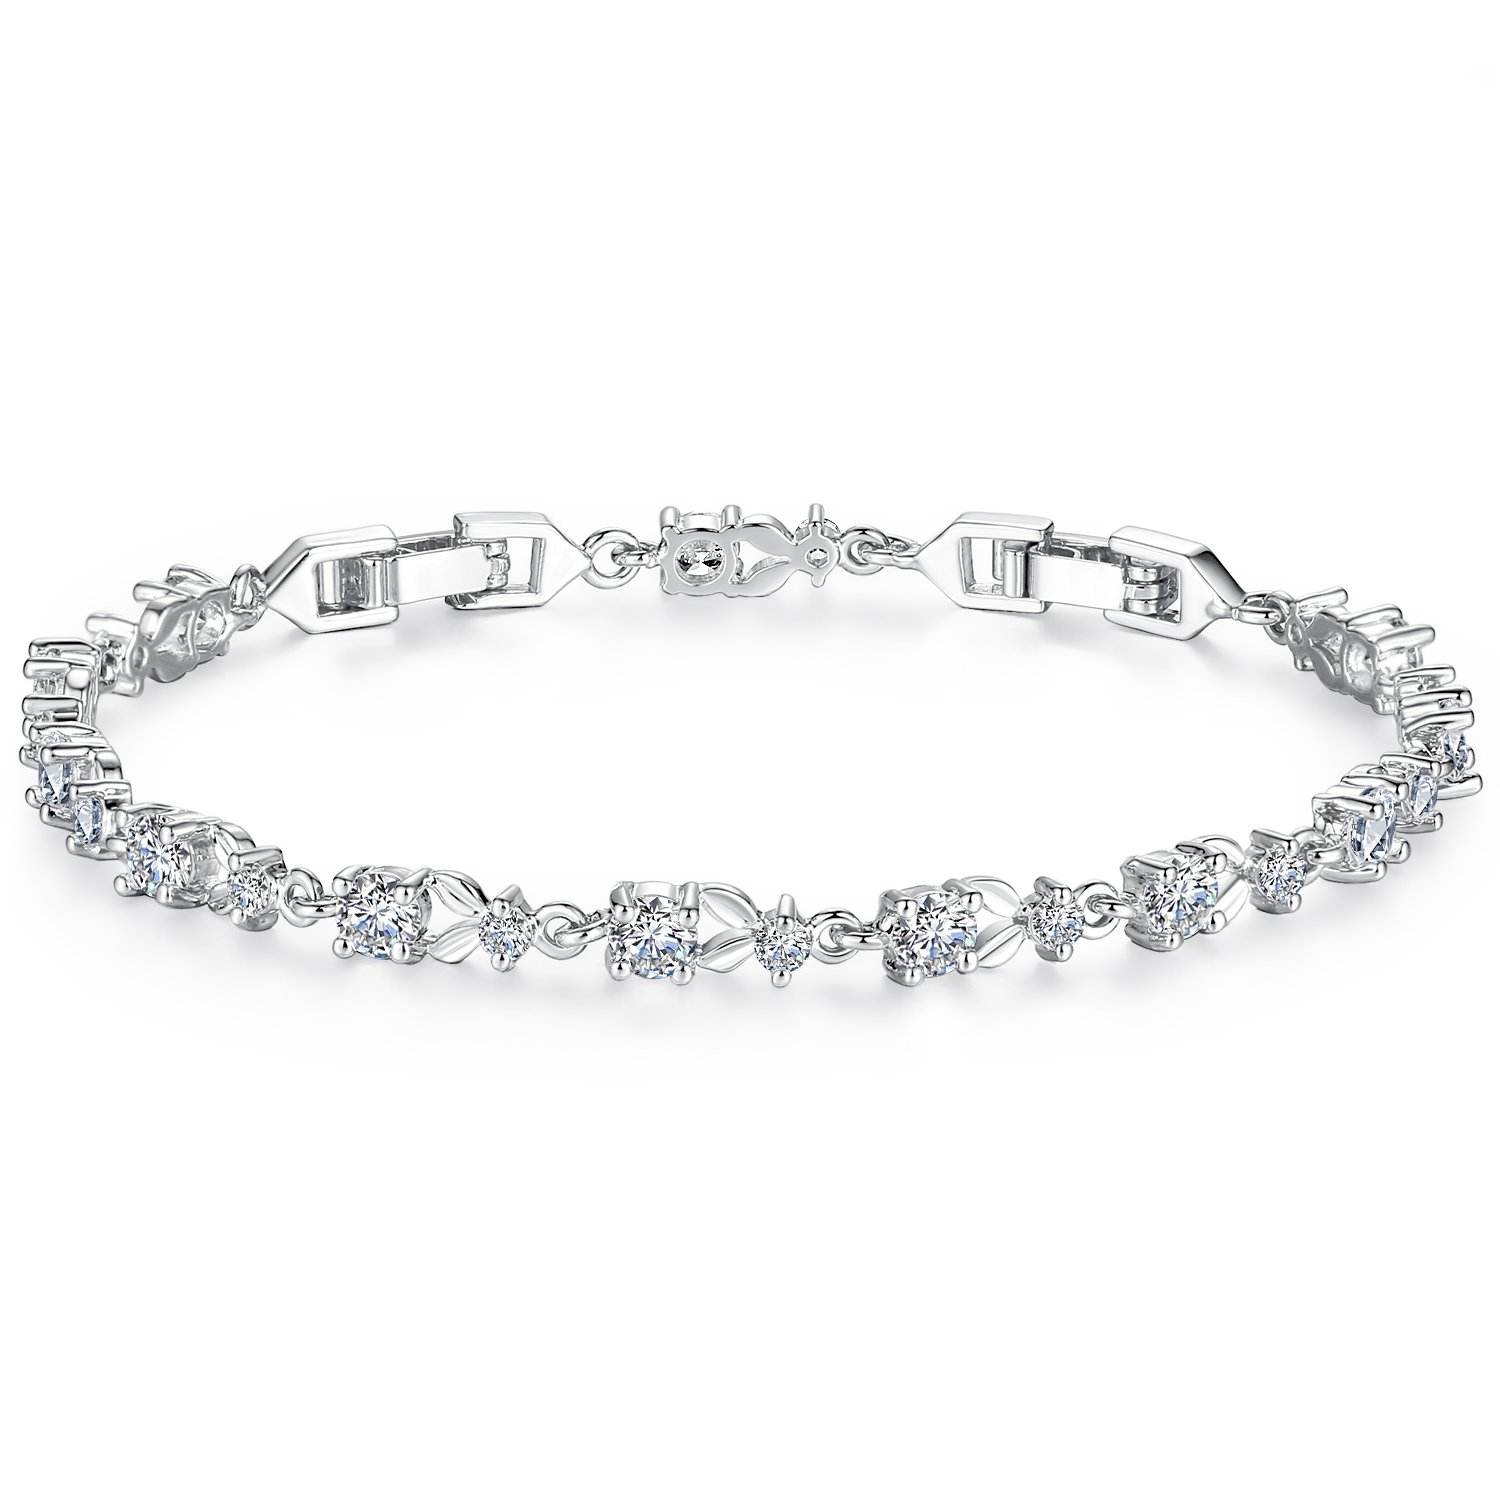 WOSTU Women Tennis Bracelets Luxury White Gold Plated Bracelet with Sparkling Cubic Zirconia for her B003-BU+BA01